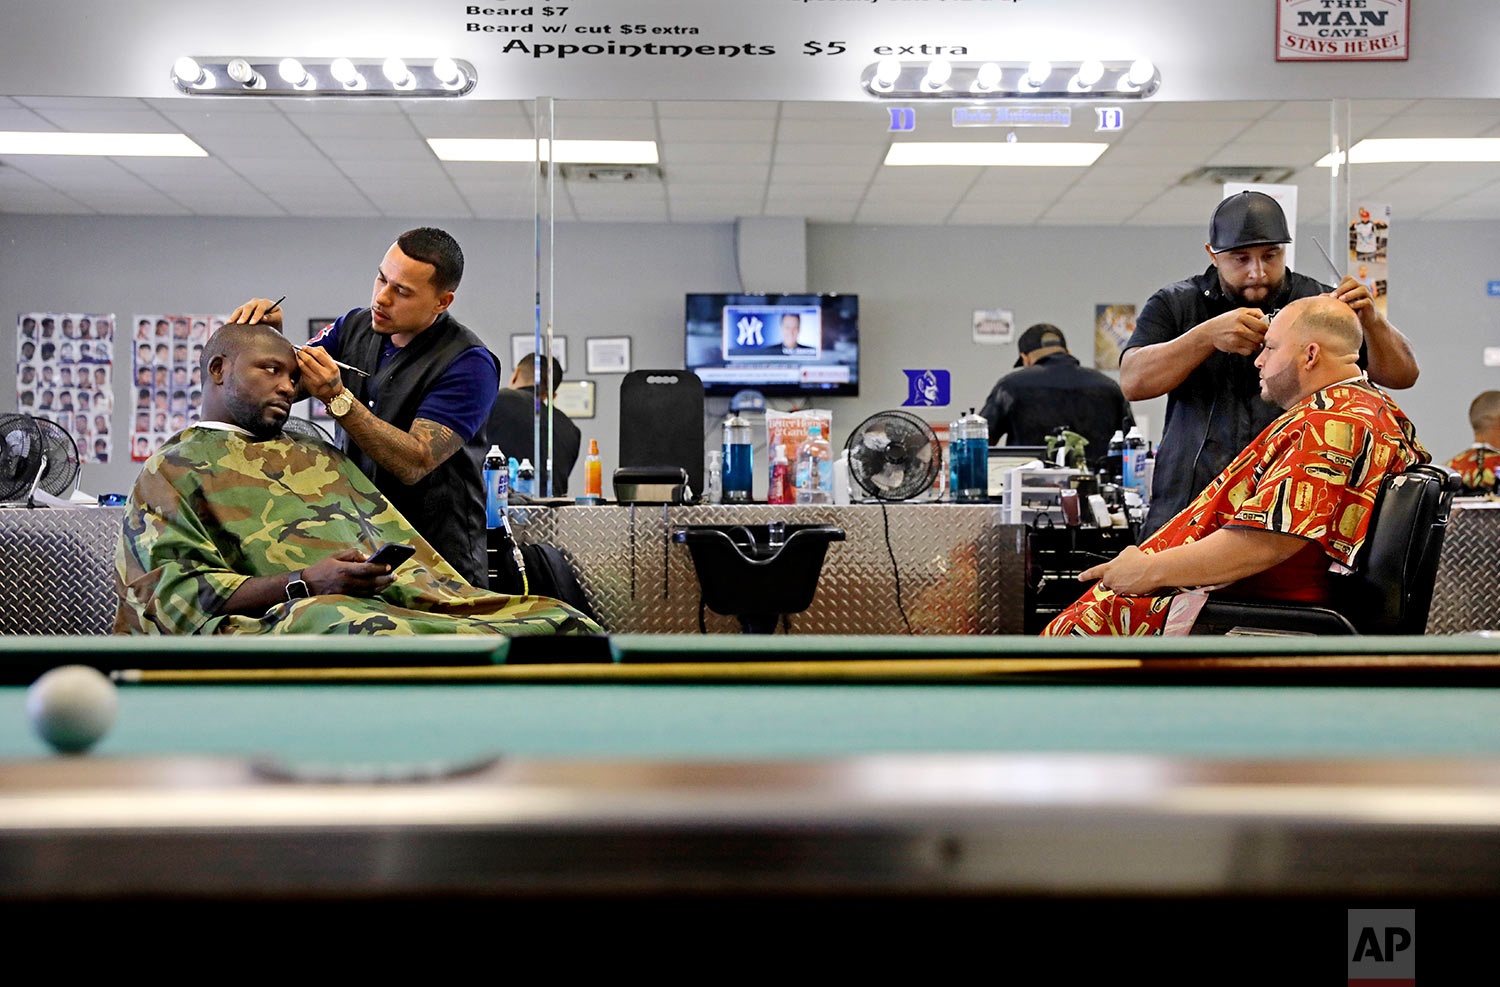 Former NFL football player Vonta Leach, left, a Donald Trump critic, gets his hair cut alongside Jamie Locklear, who voted for Trump, at a barbershop in Lumberton, N.C.(AP Photo/David Goldman)